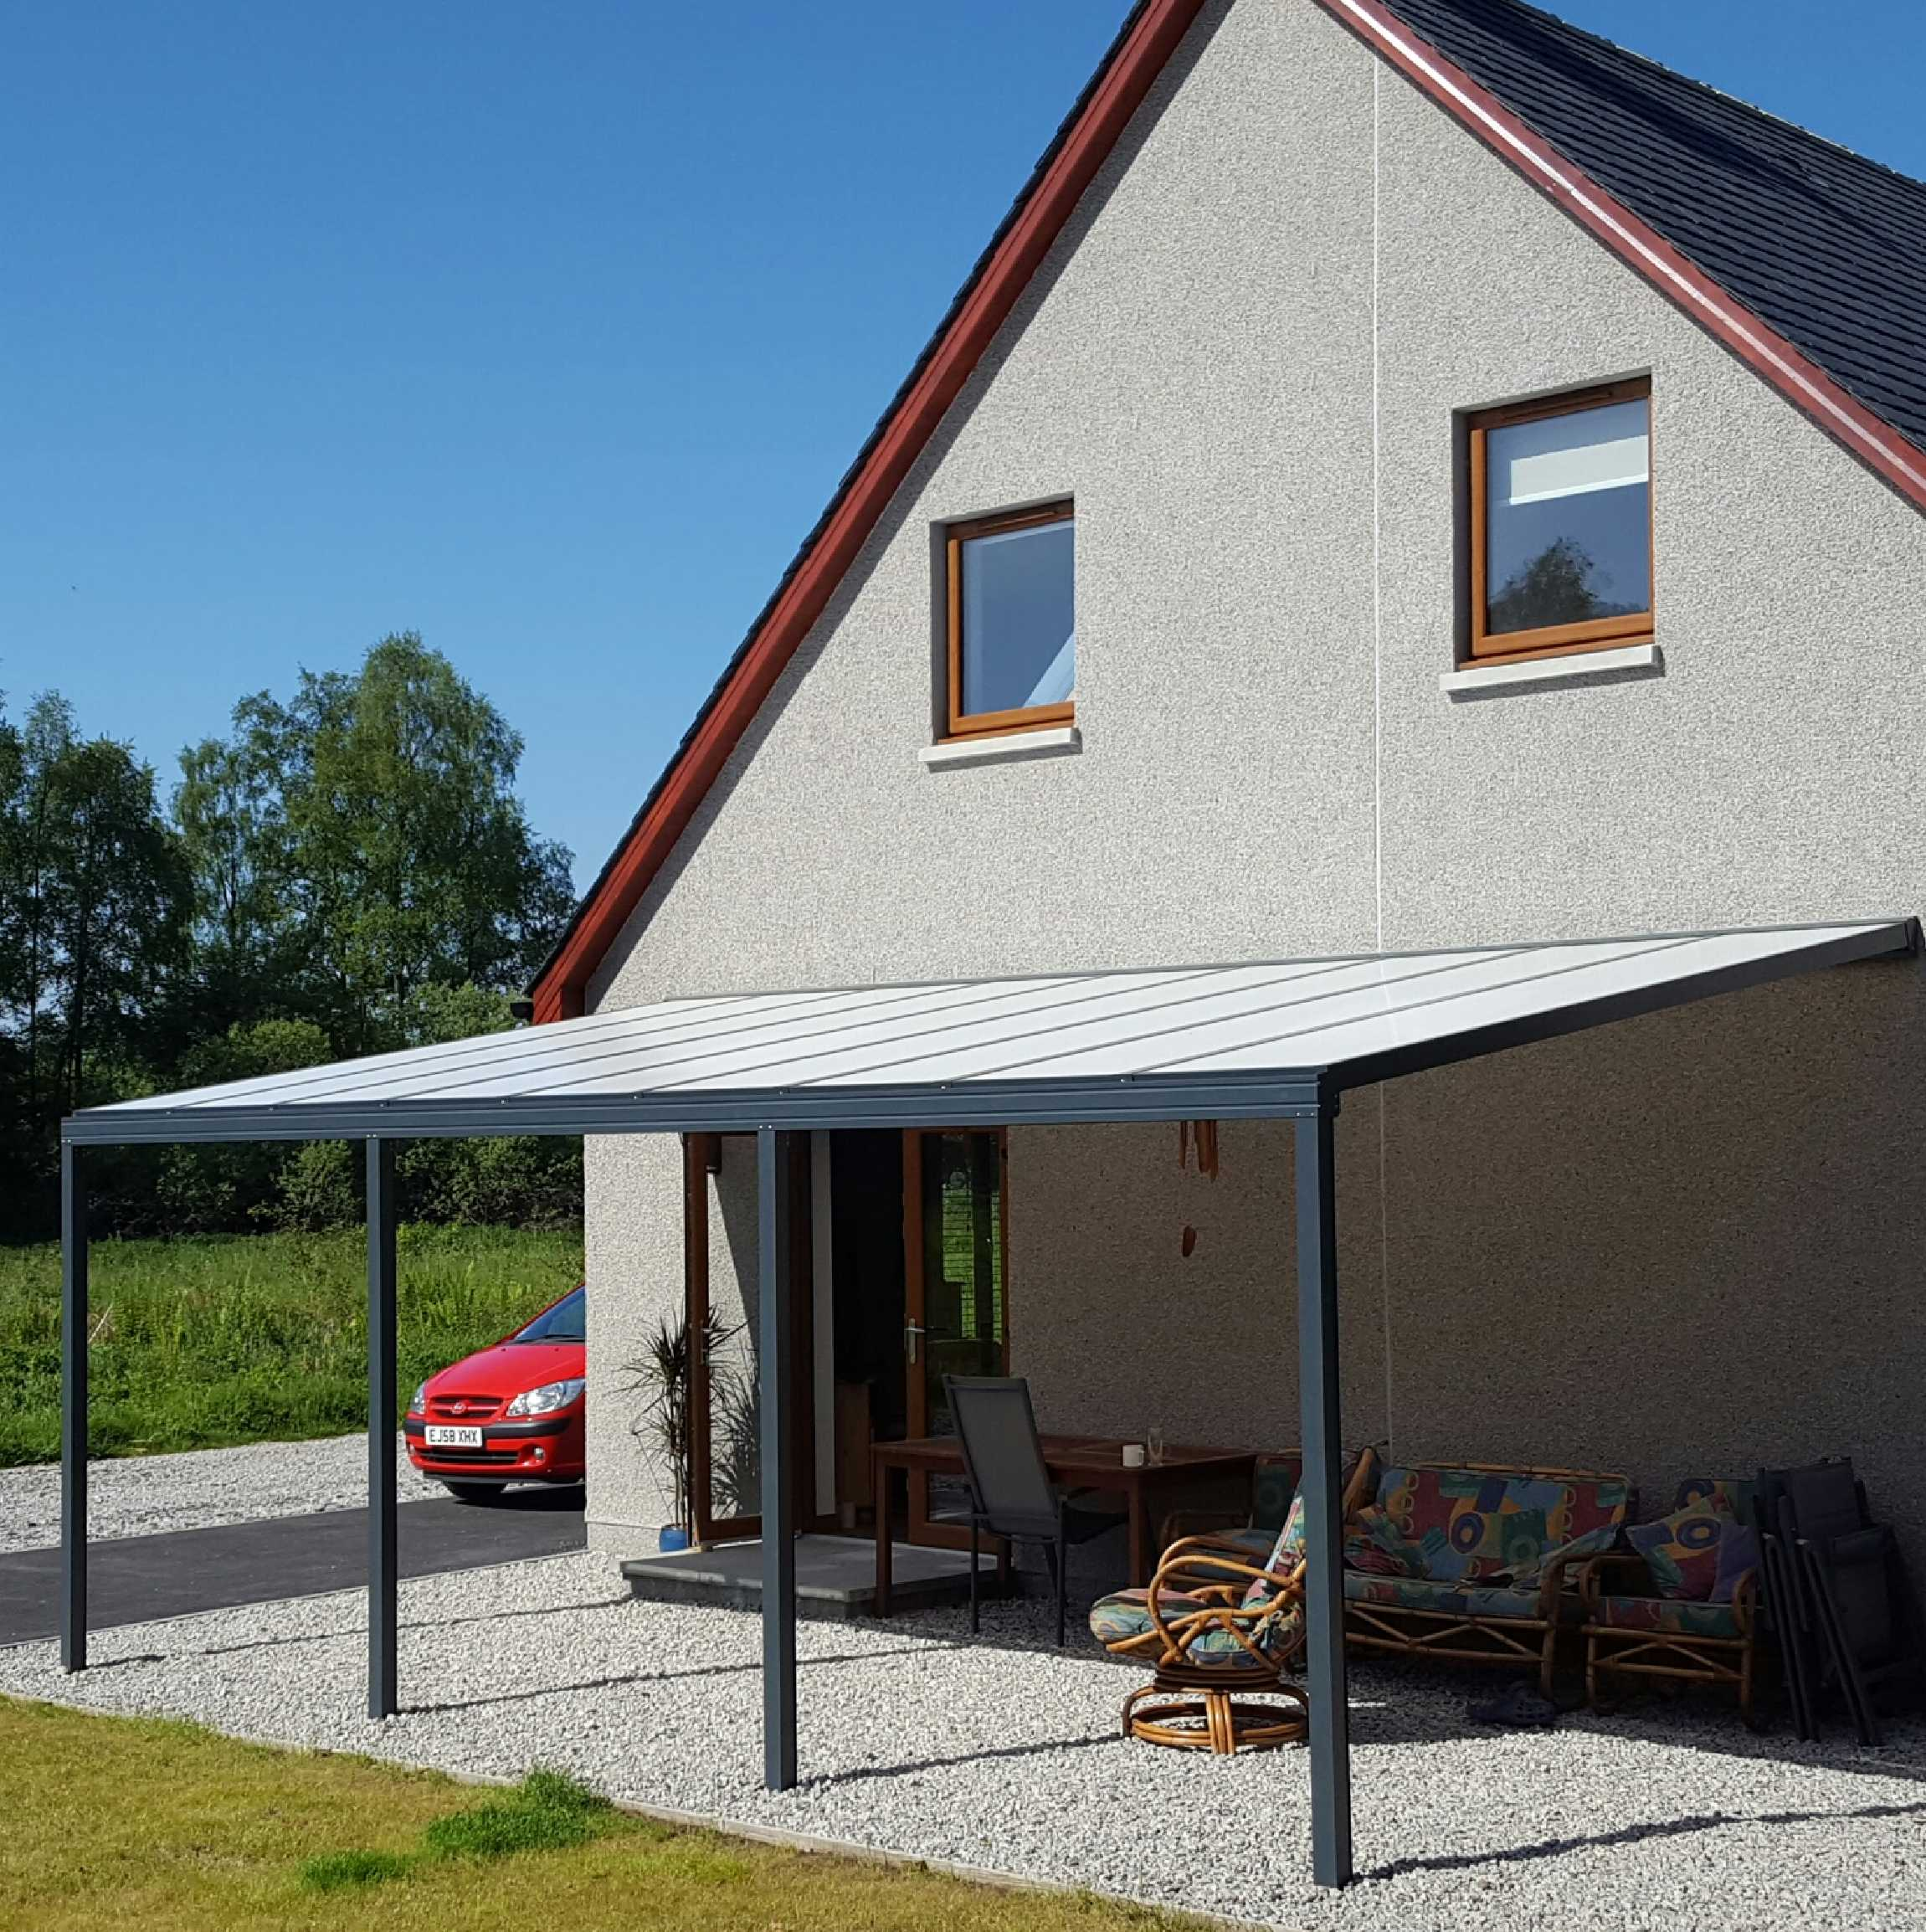 Great selection of Omega Smart Lean-To Canopy, Anthracite Grey, 16mm Polycarbonate Glazing - 6.0m (W) x 4.5m (P), (3) Supporting Posts